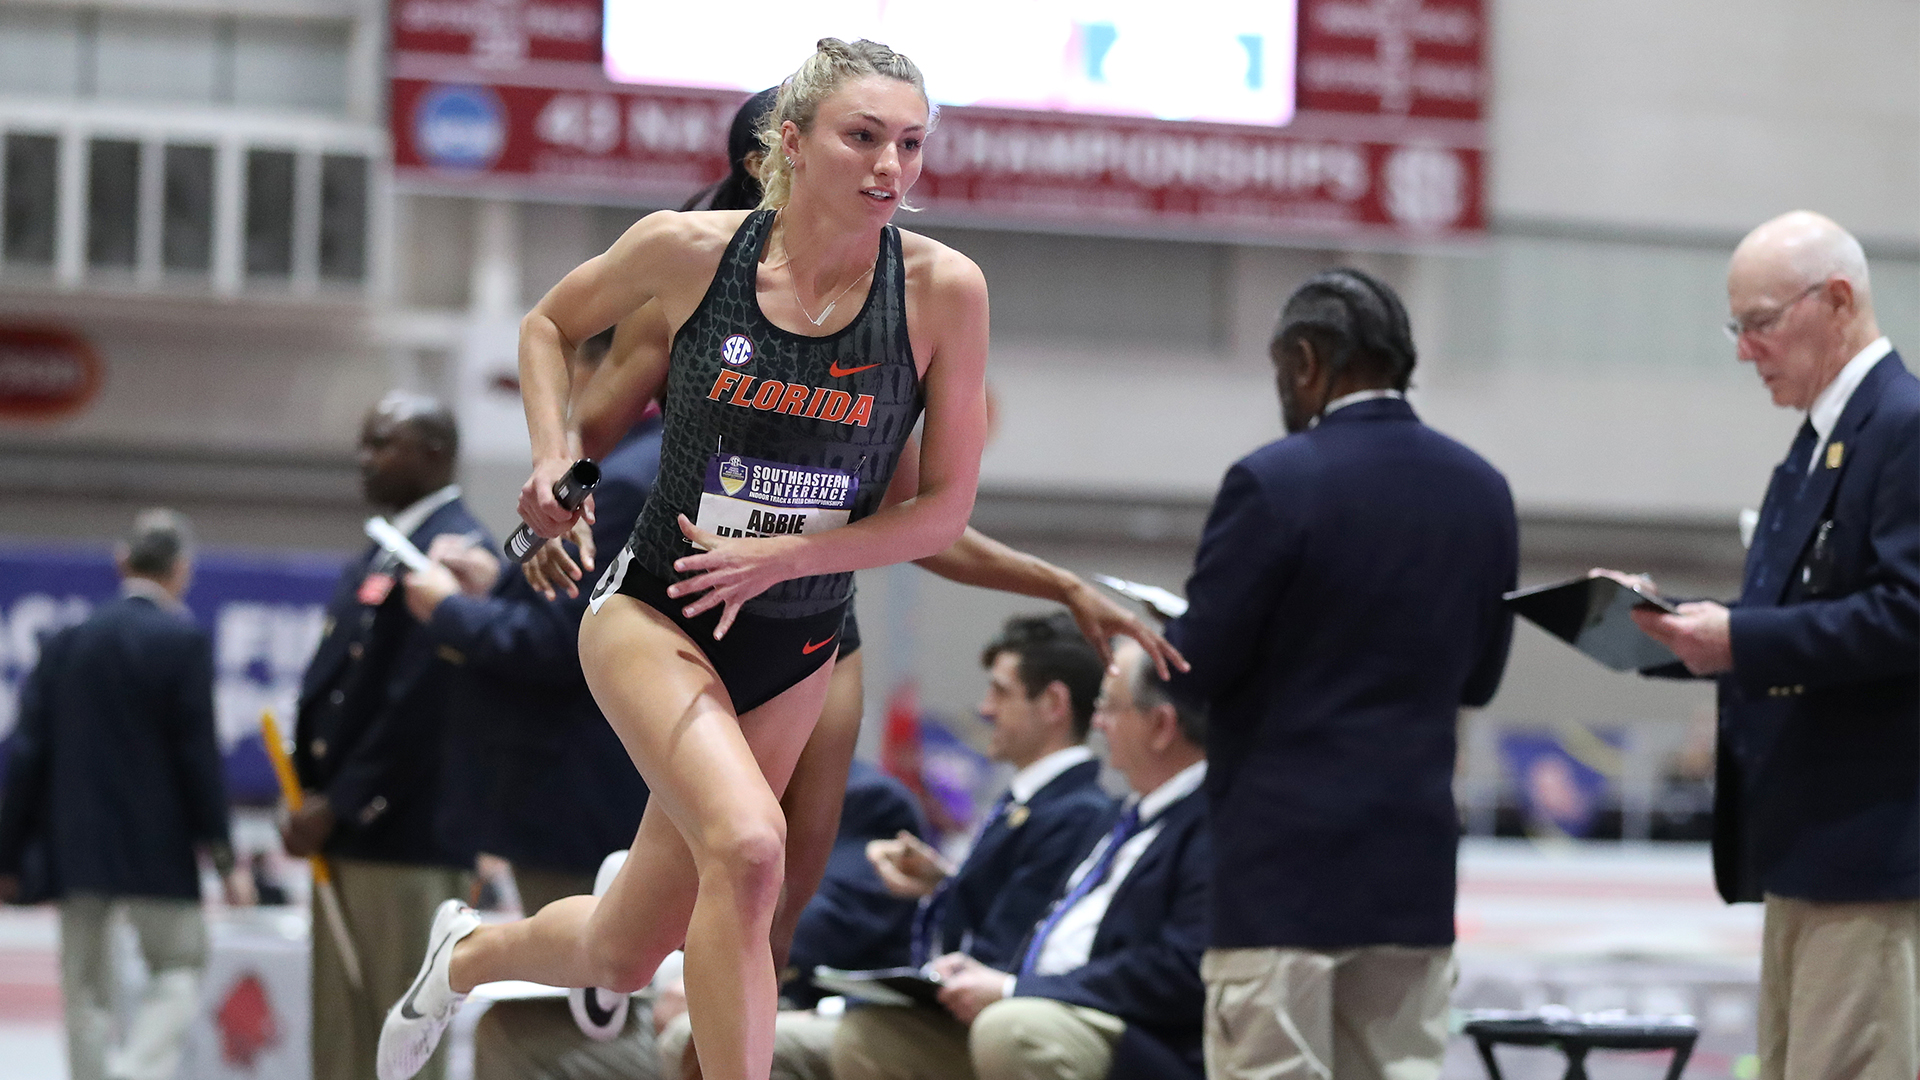 sec championship track and field 2020